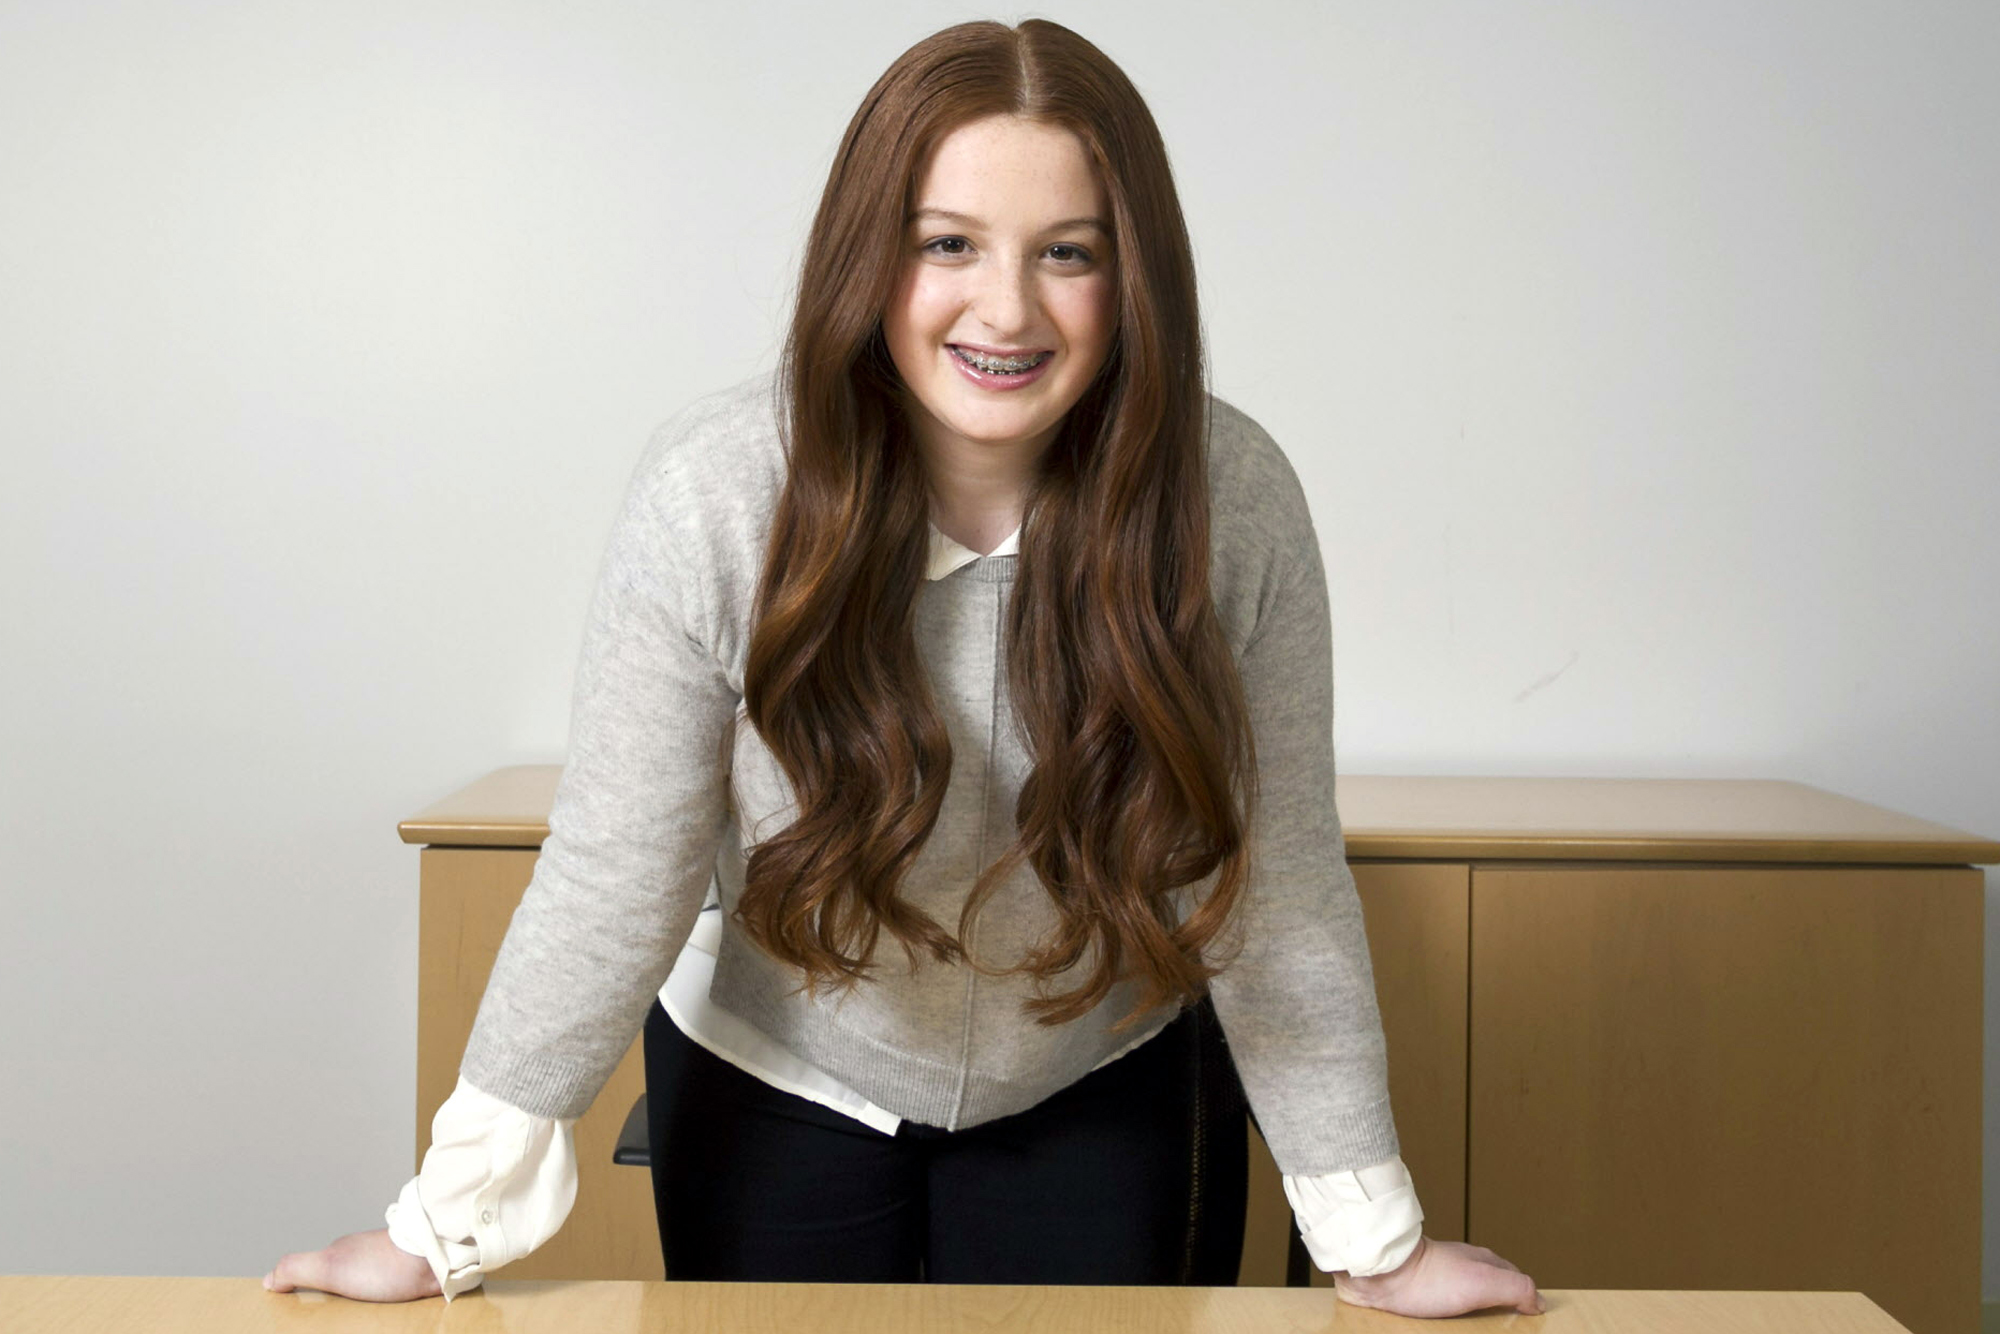 Meet the 15-year-old babysitting boss poised to make millions